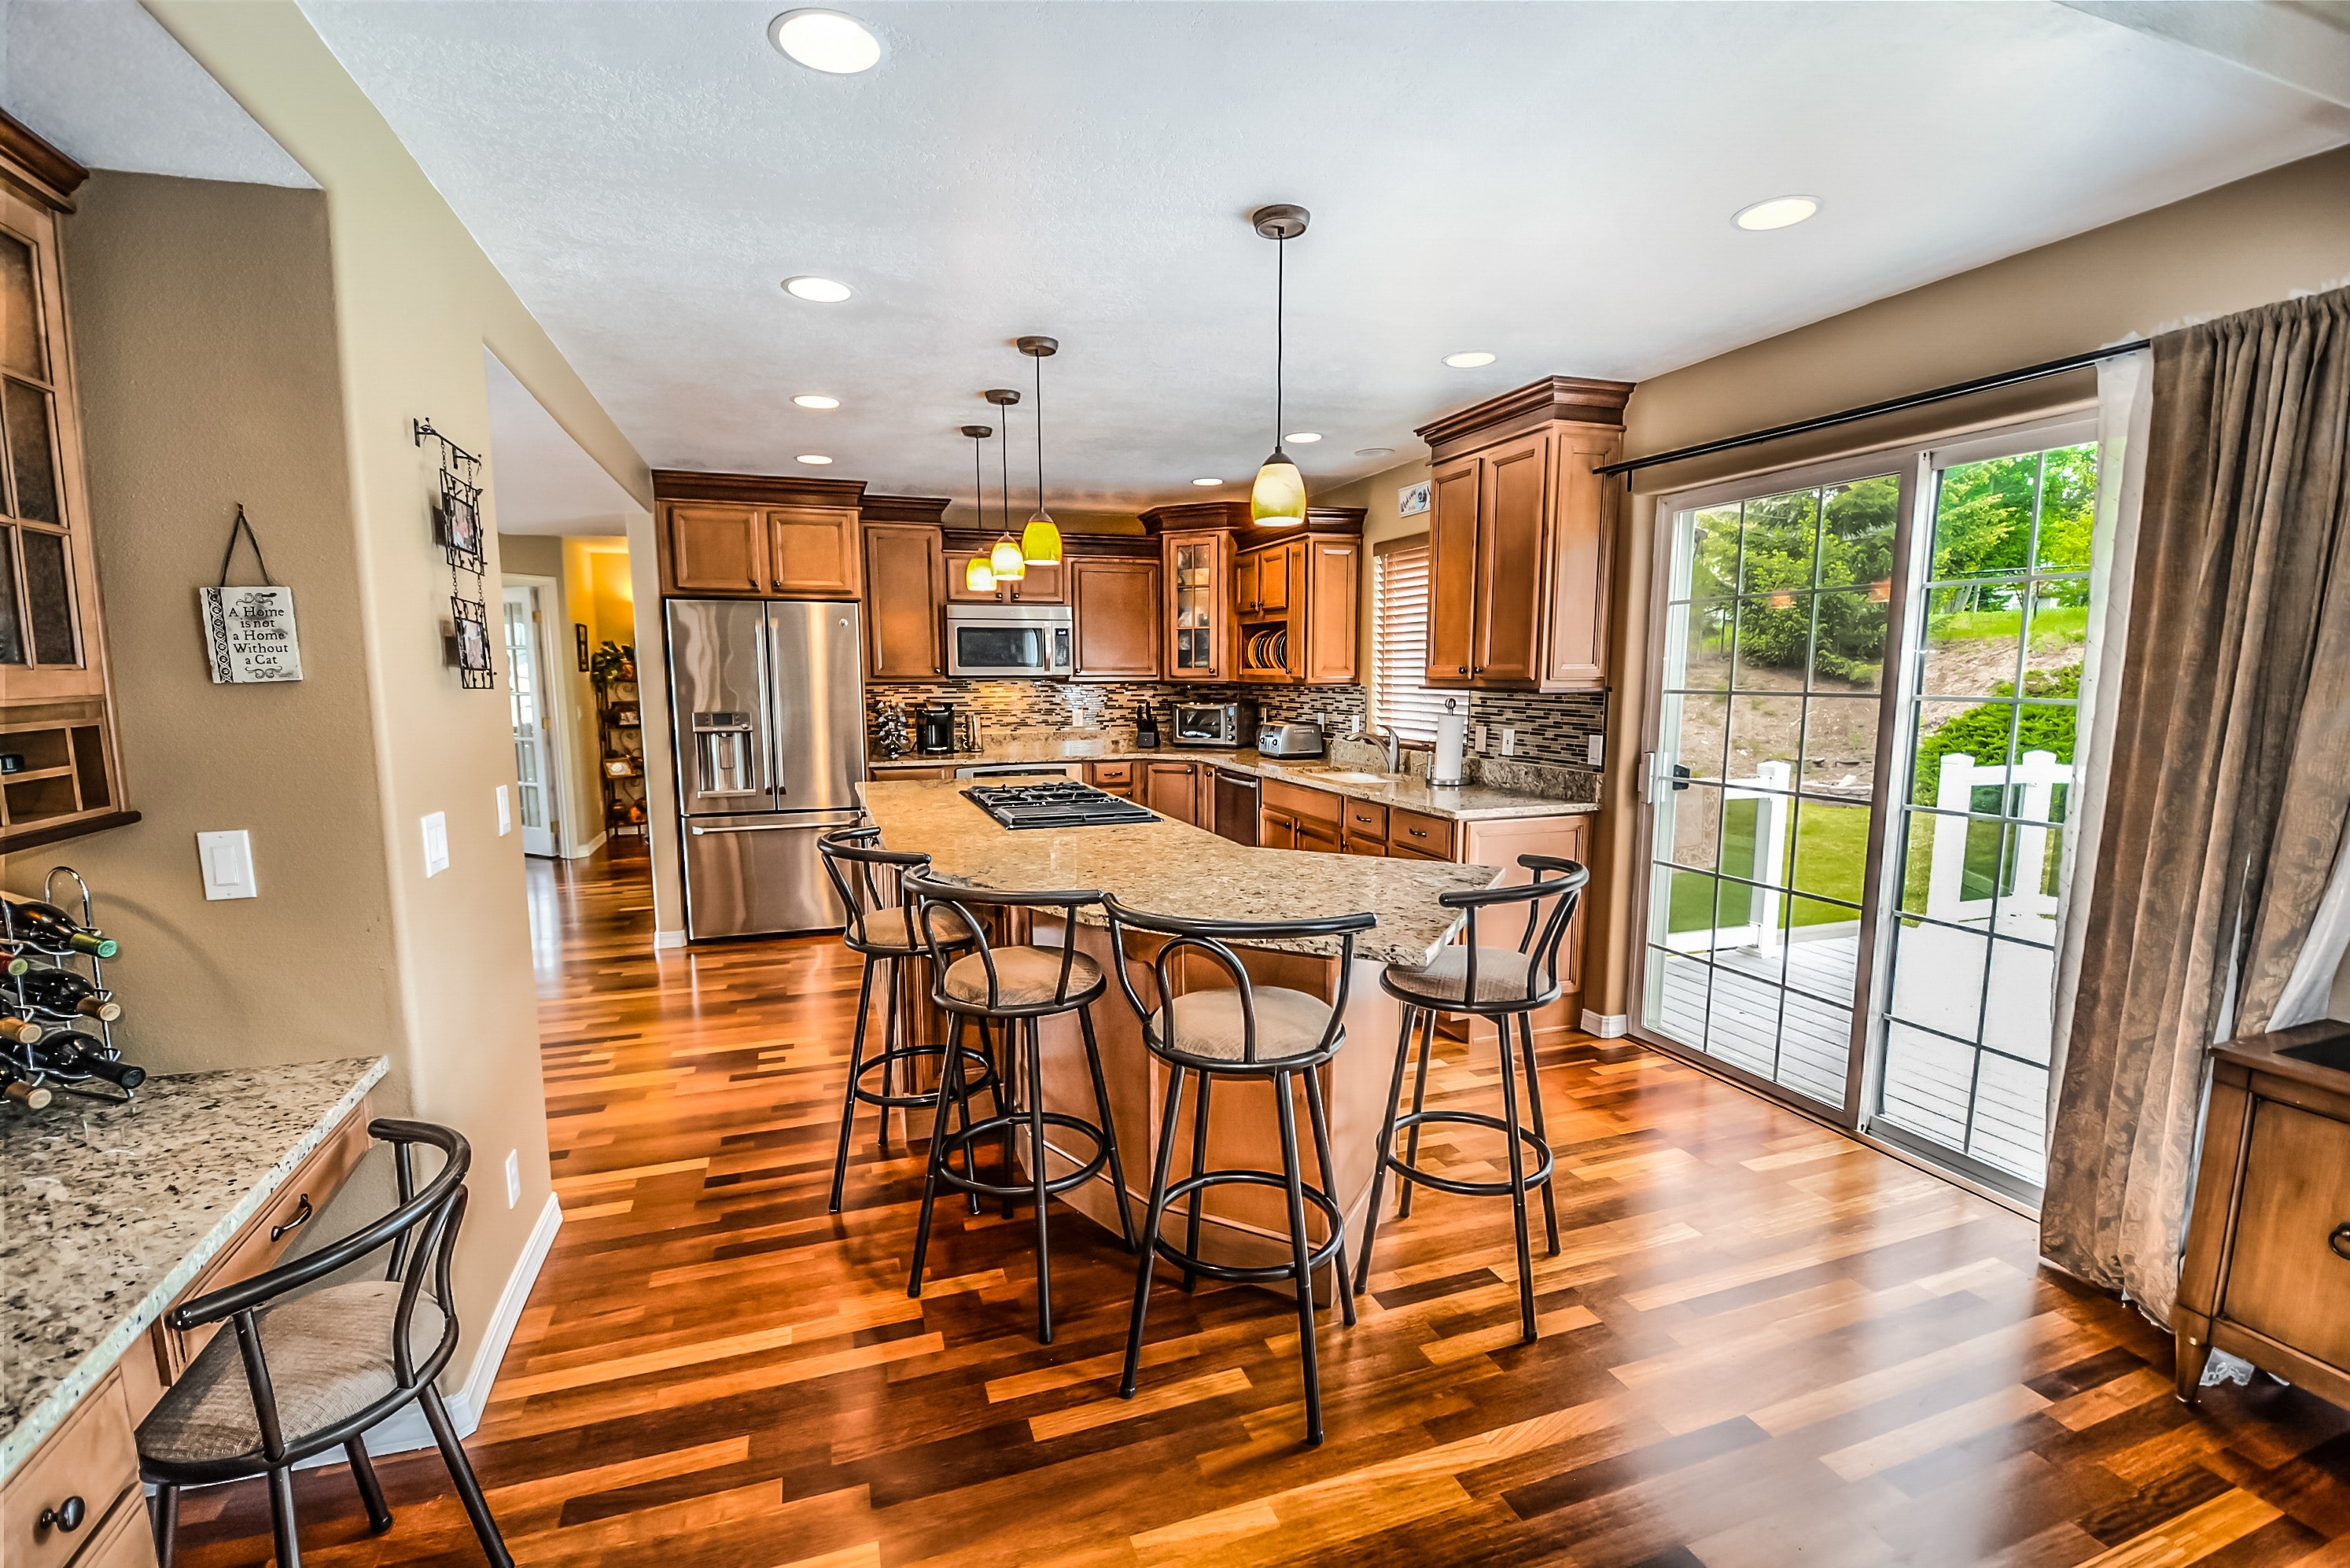 photos with ideas design home interior luxury upon for kitchen